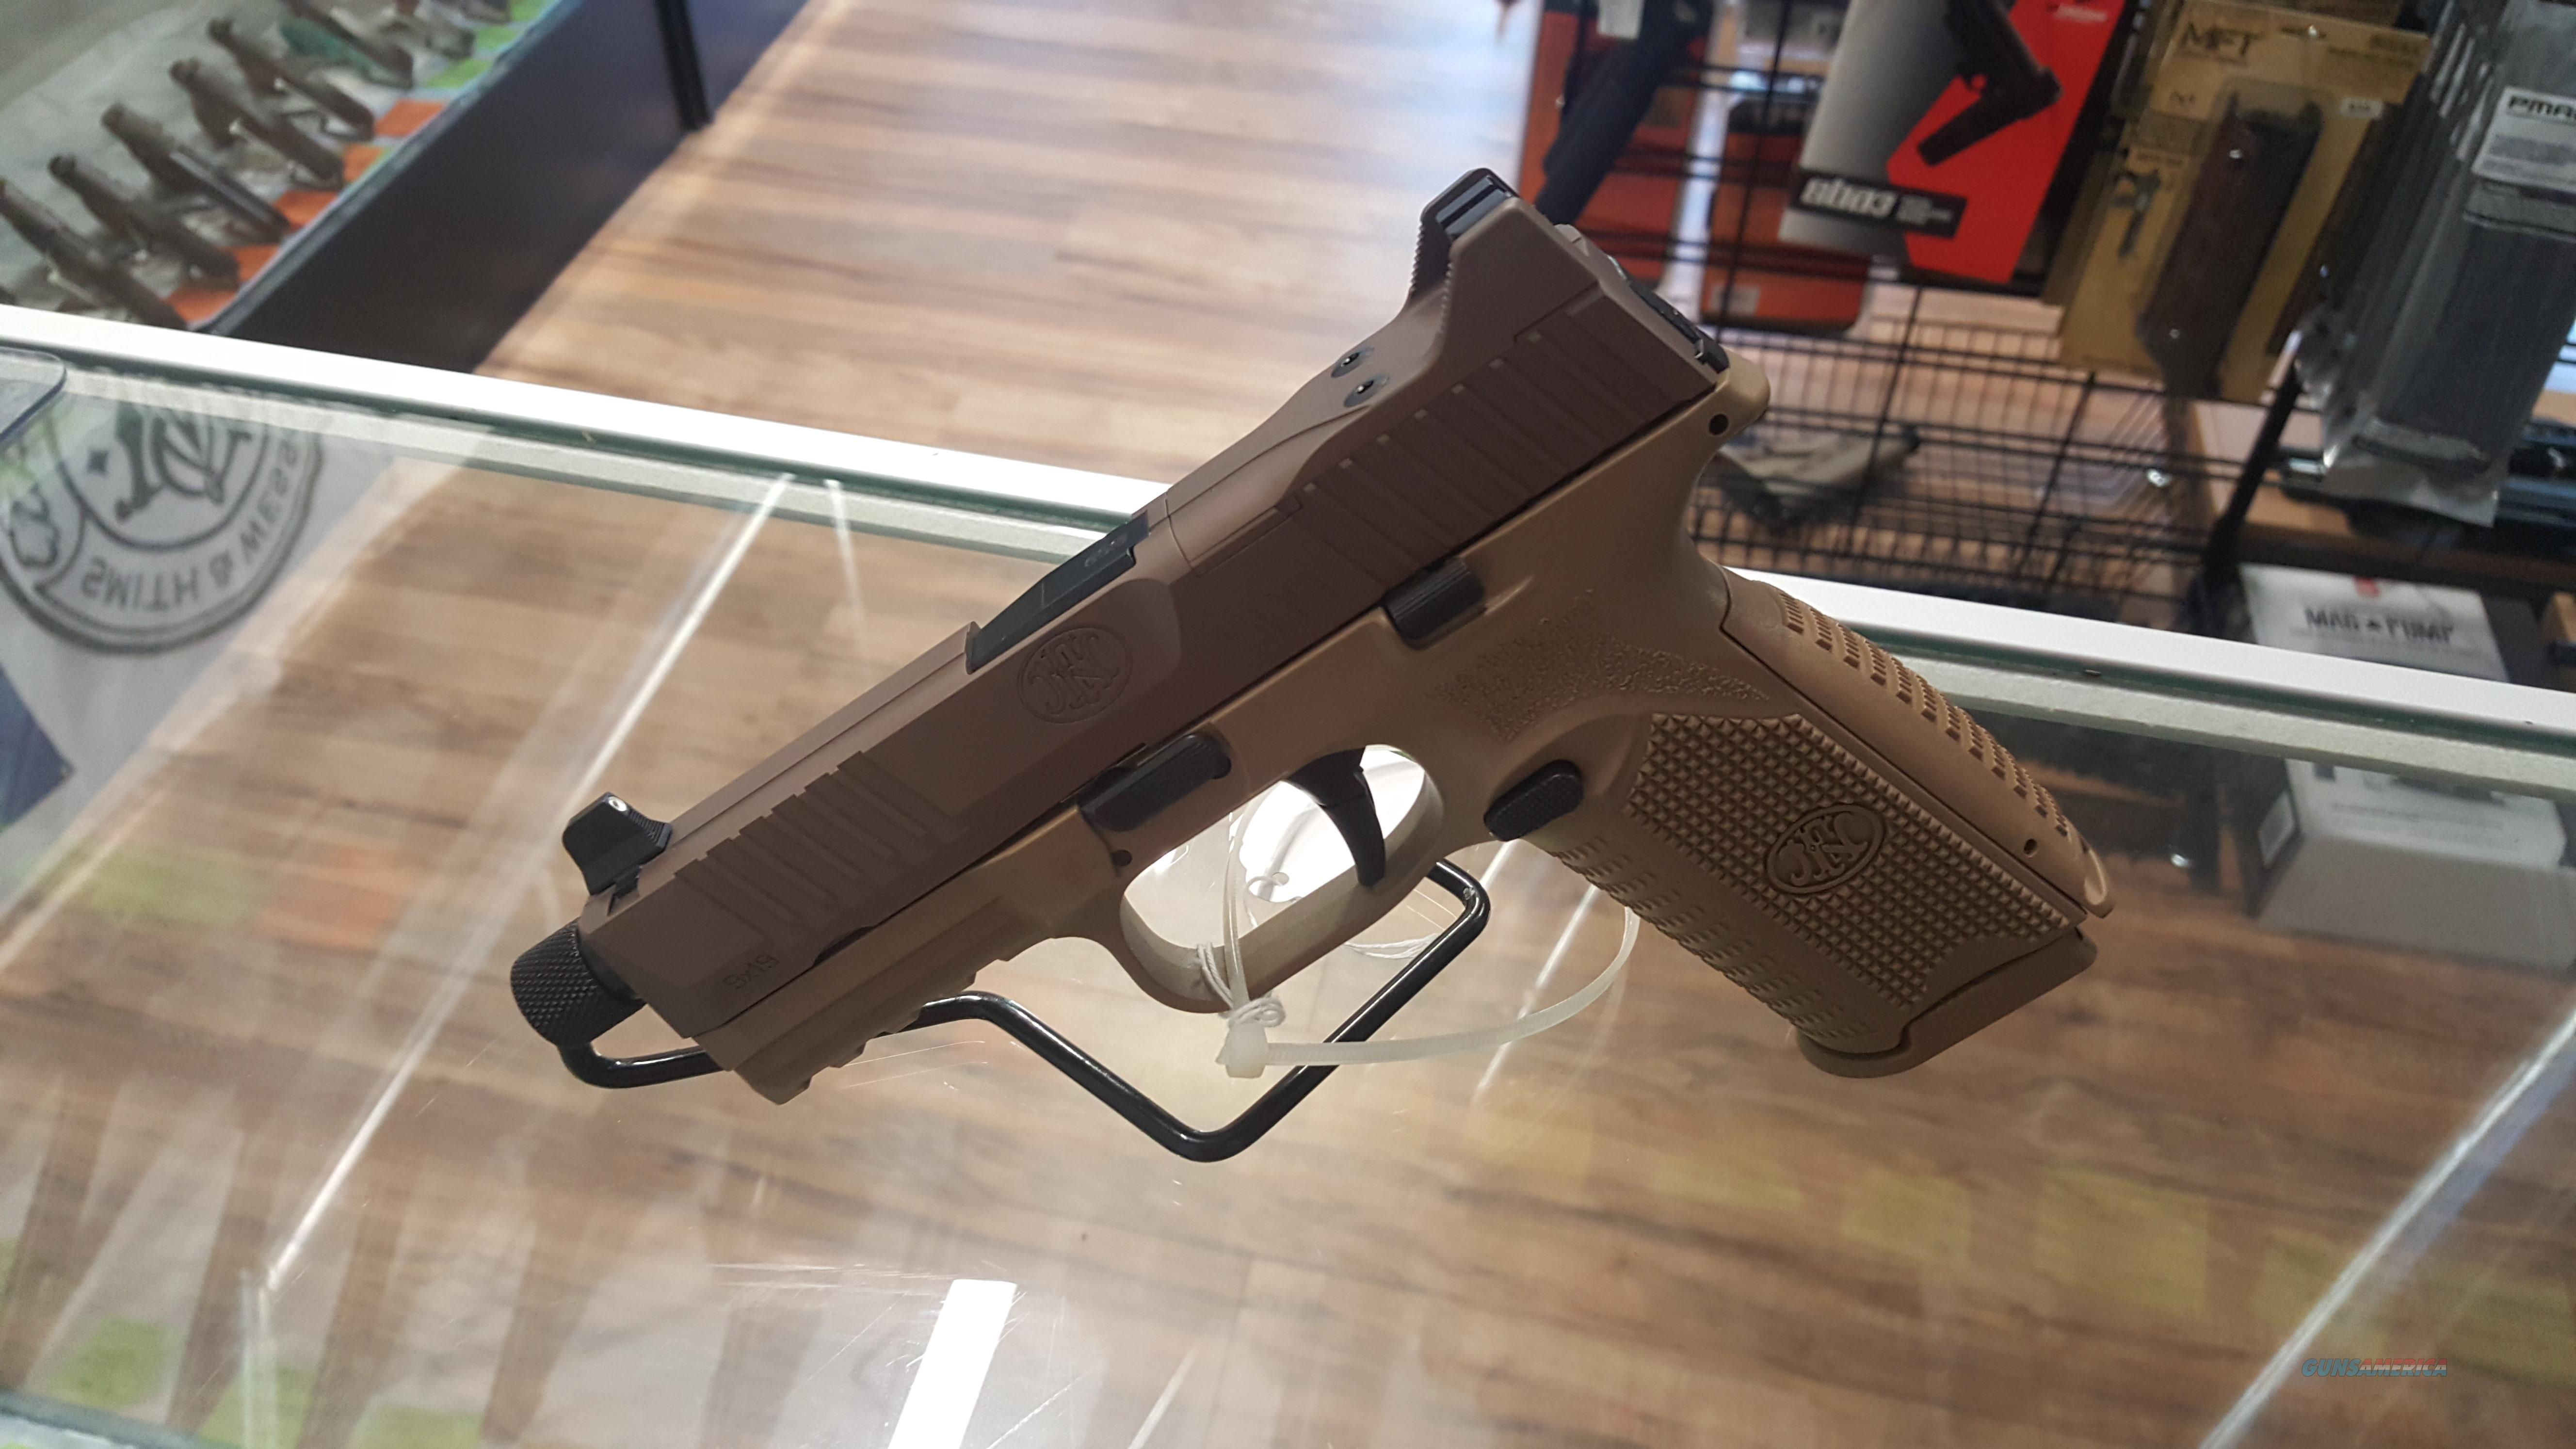 NEW FN 509 Tactical! Night Sights, Threaded Barrel, 3 Mags + Carry Case!  Guns > Pistols > FNH - Fabrique Nationale (FN) Pistols > FN 509